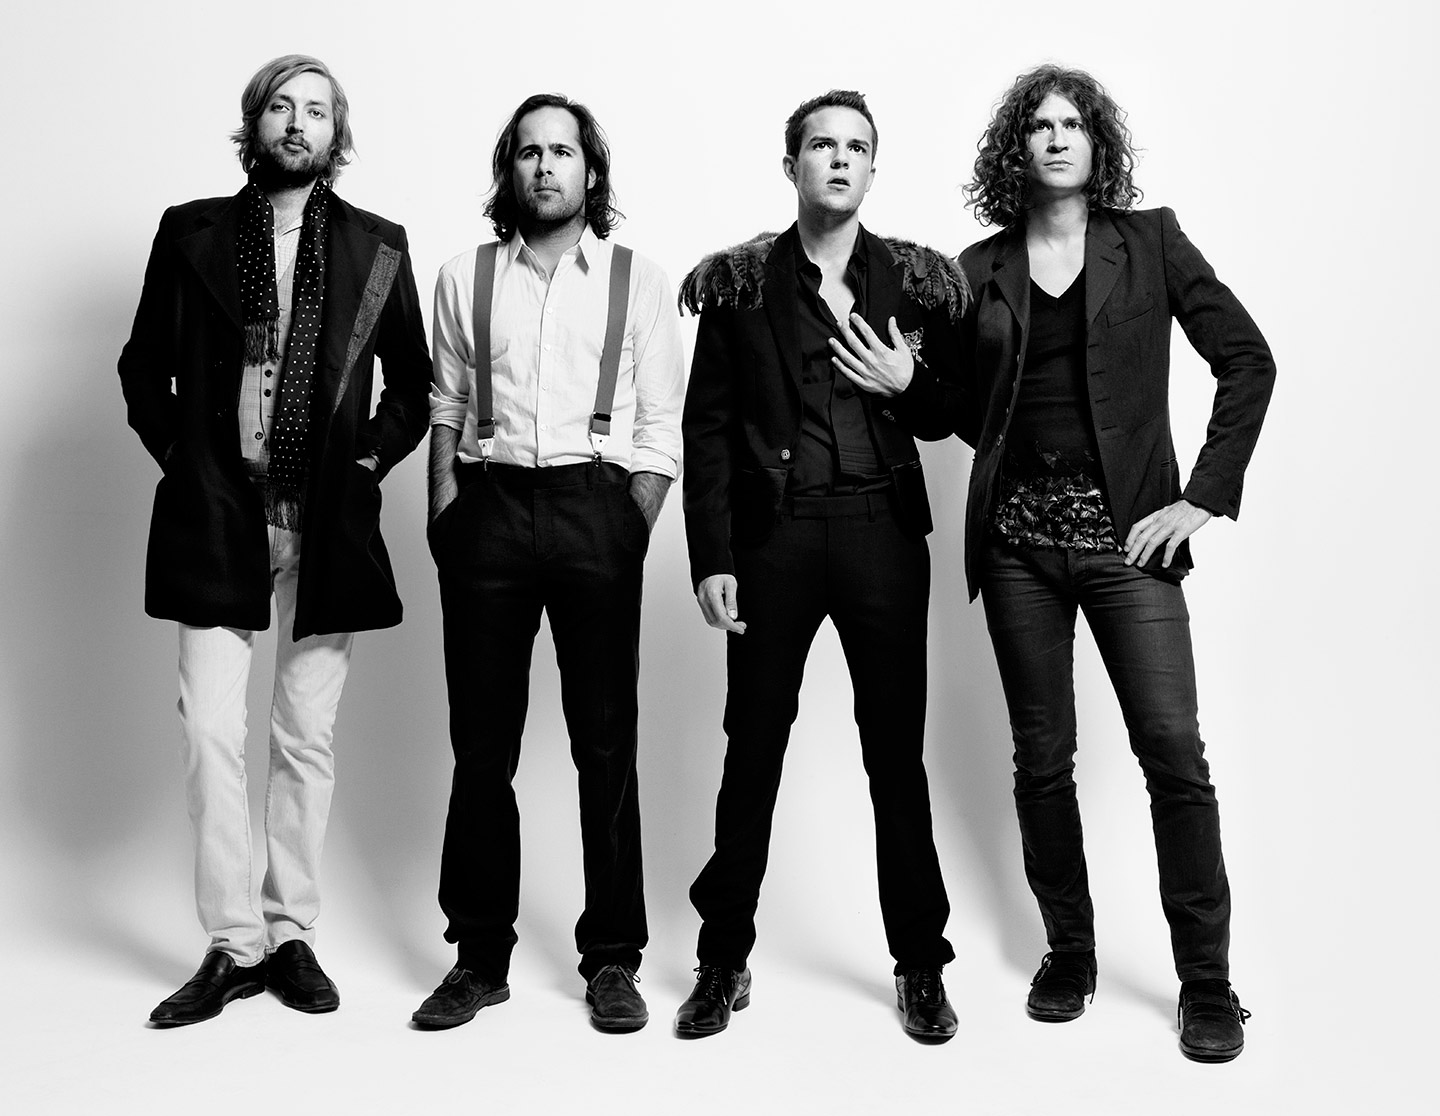 Miles Kane and The Courteeners to support The Killers at Glasgow Summer Sessi